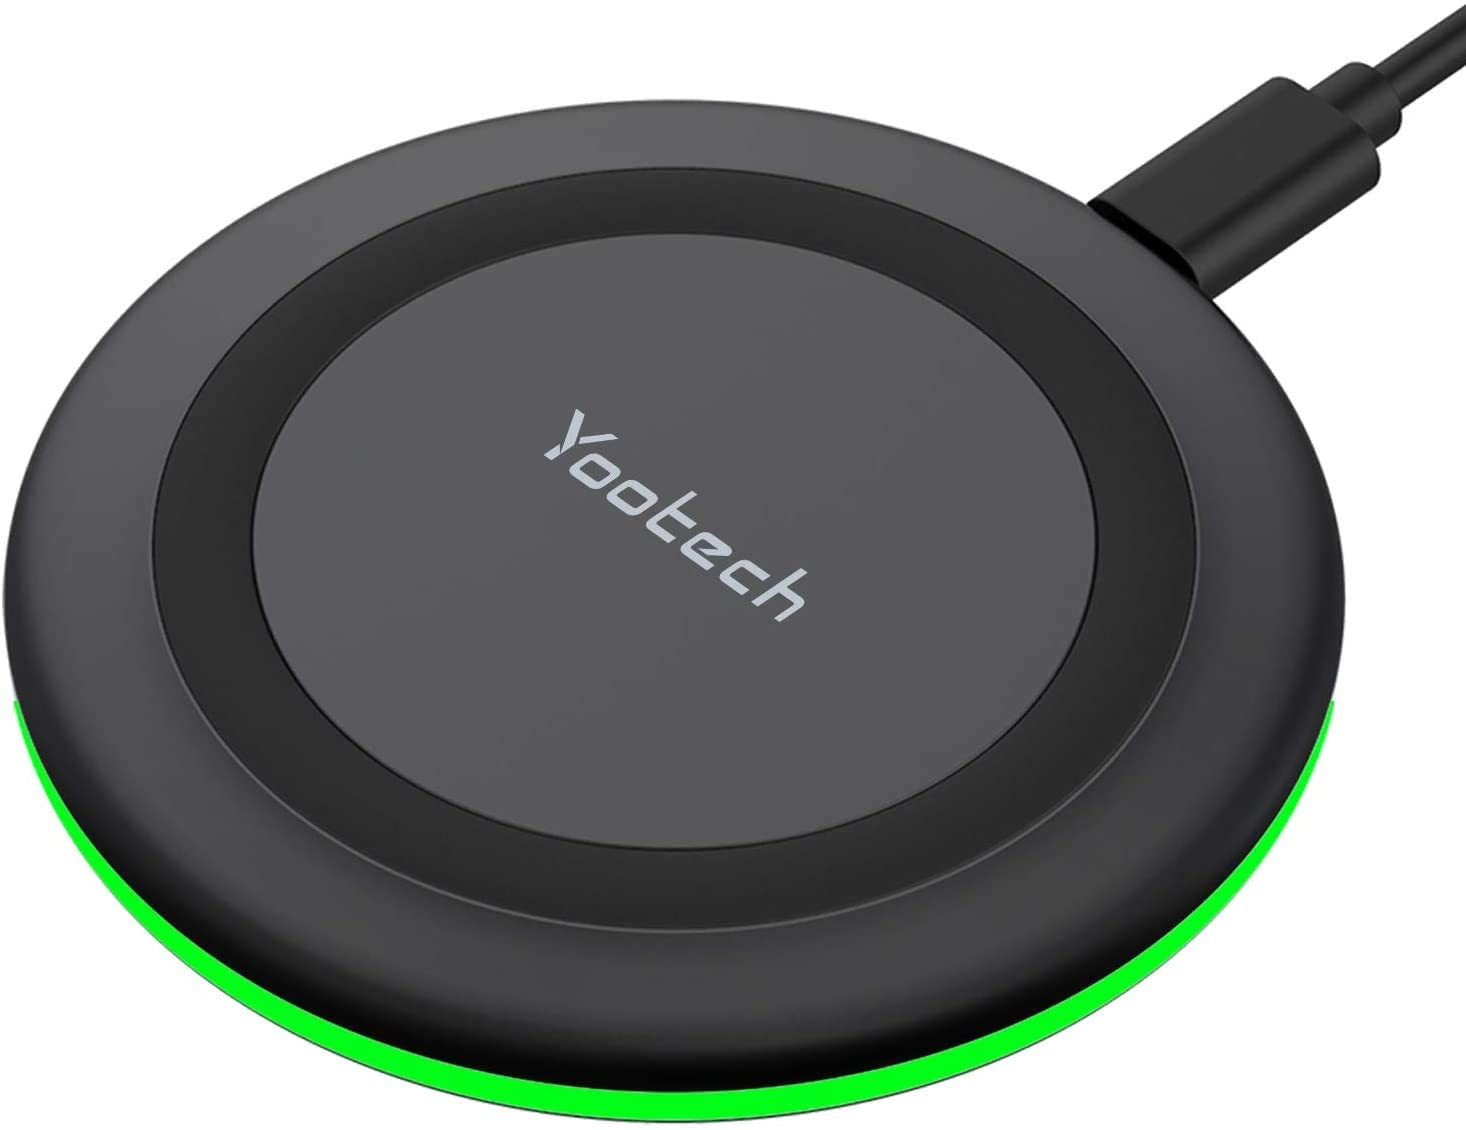 Save 5% on Yootech Wireless Charger